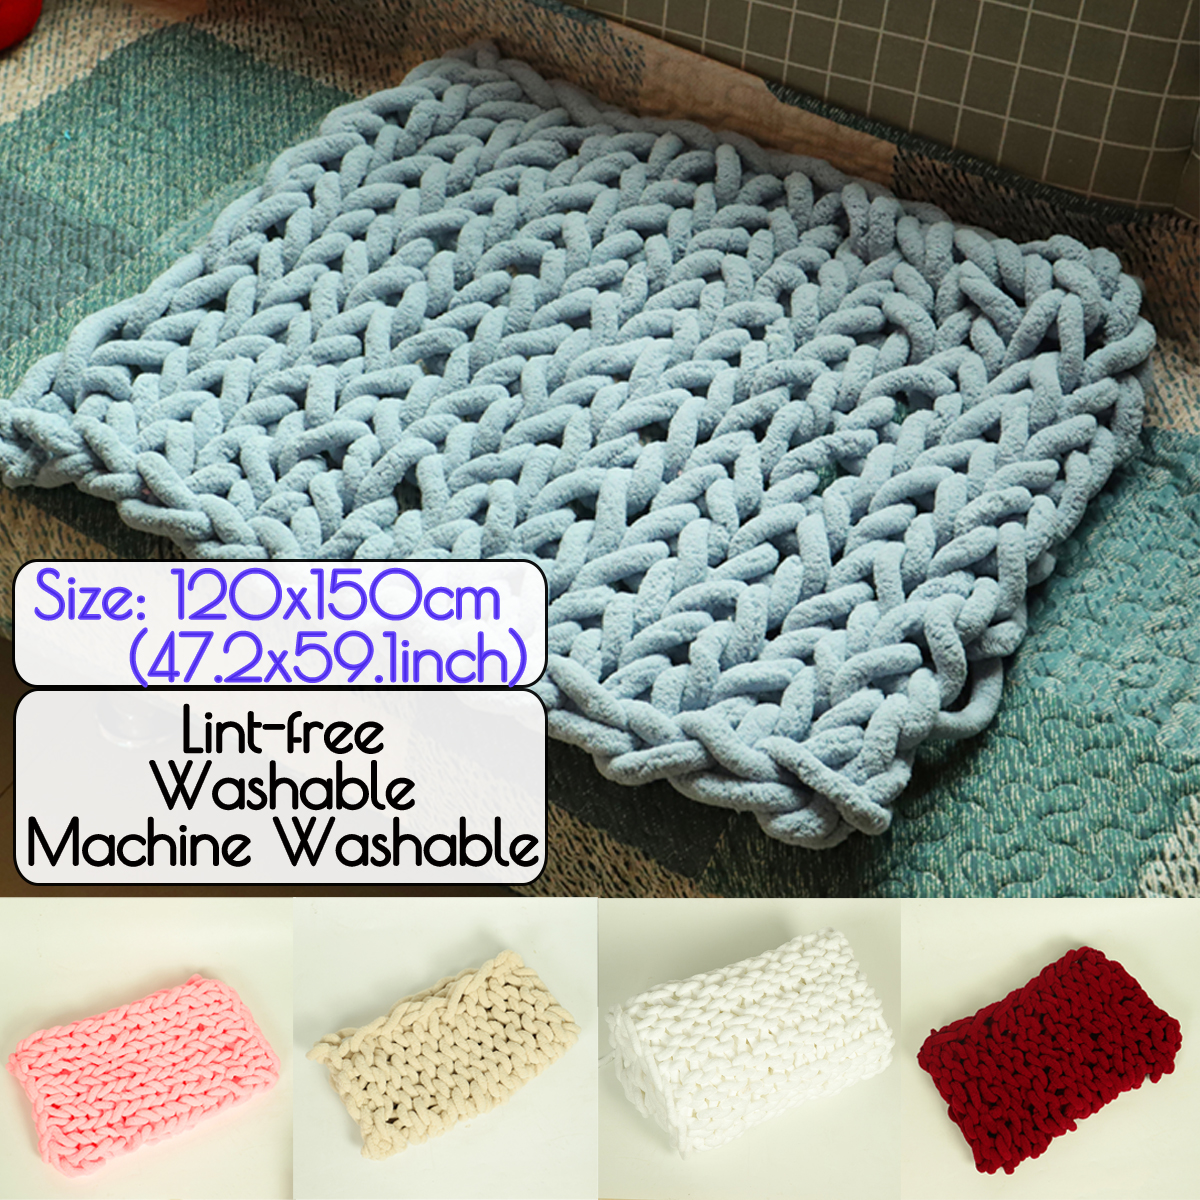 120x150cm Handmade Knitted Blanket Cotton Soft Washable Lint-free Throw Blankets